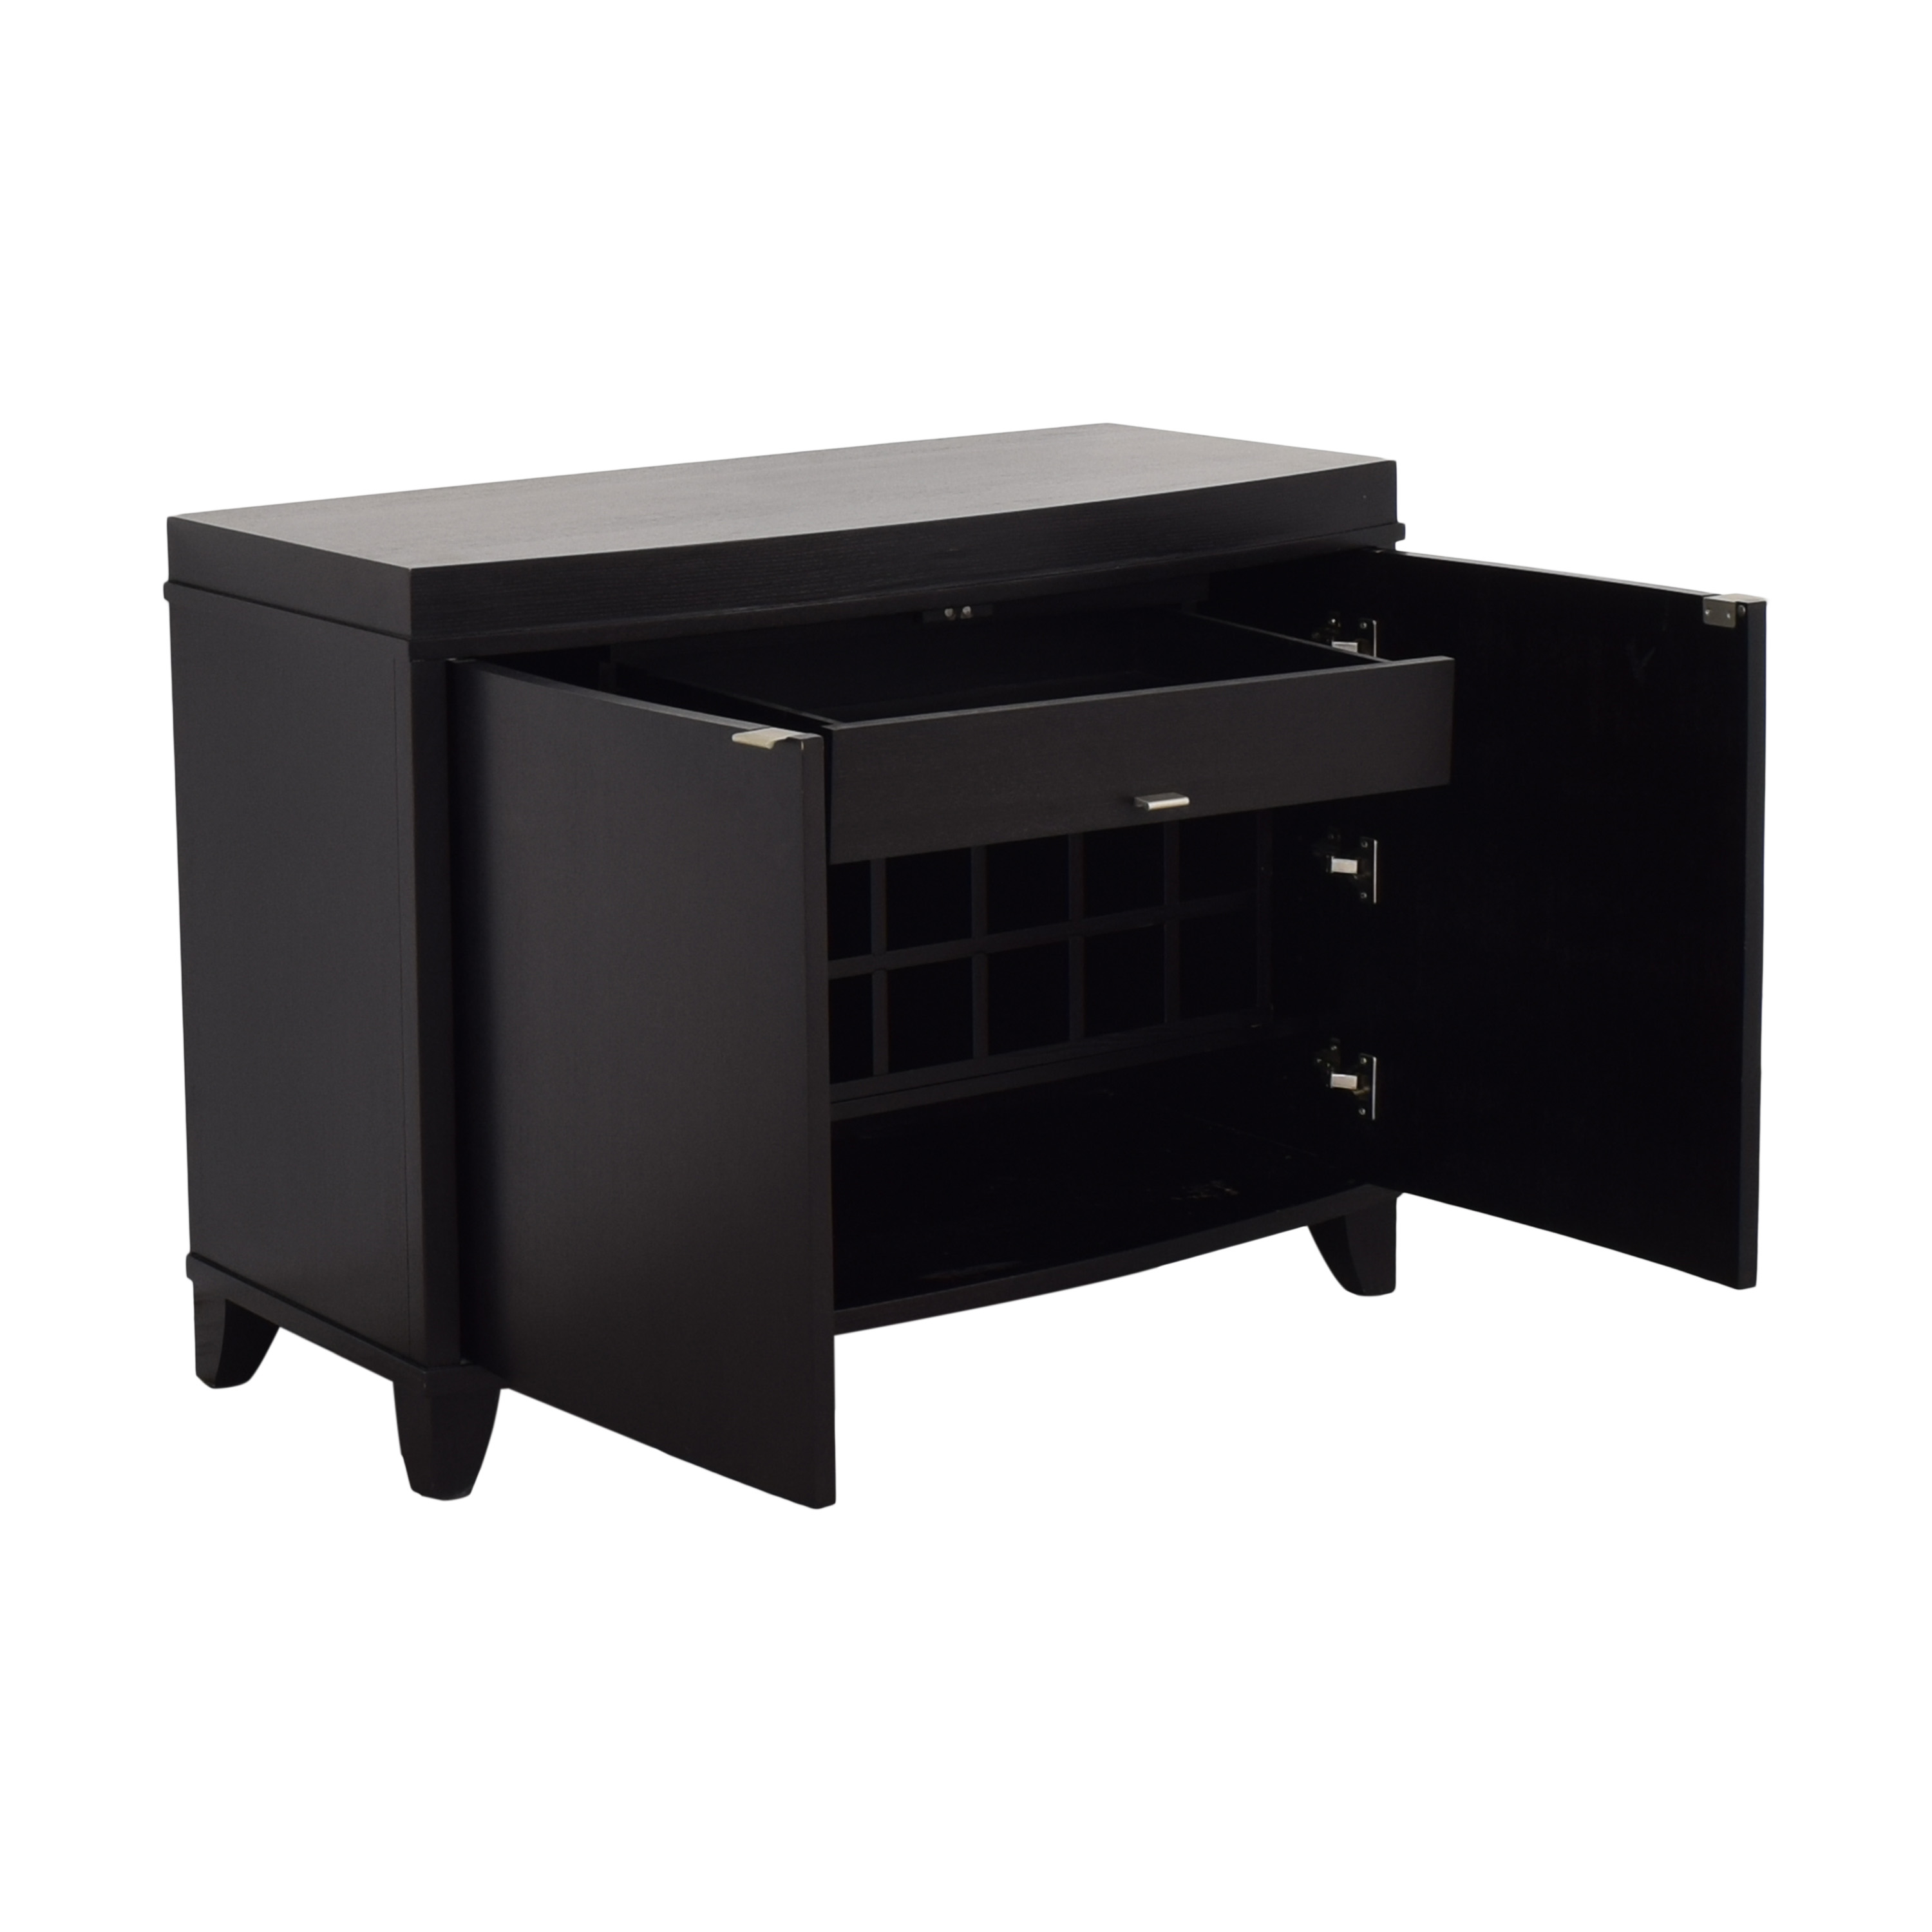 Crate & Barrel Crate & Barrel Bar Cabinet with Wine and Glass Storage Cabinets & Sideboards